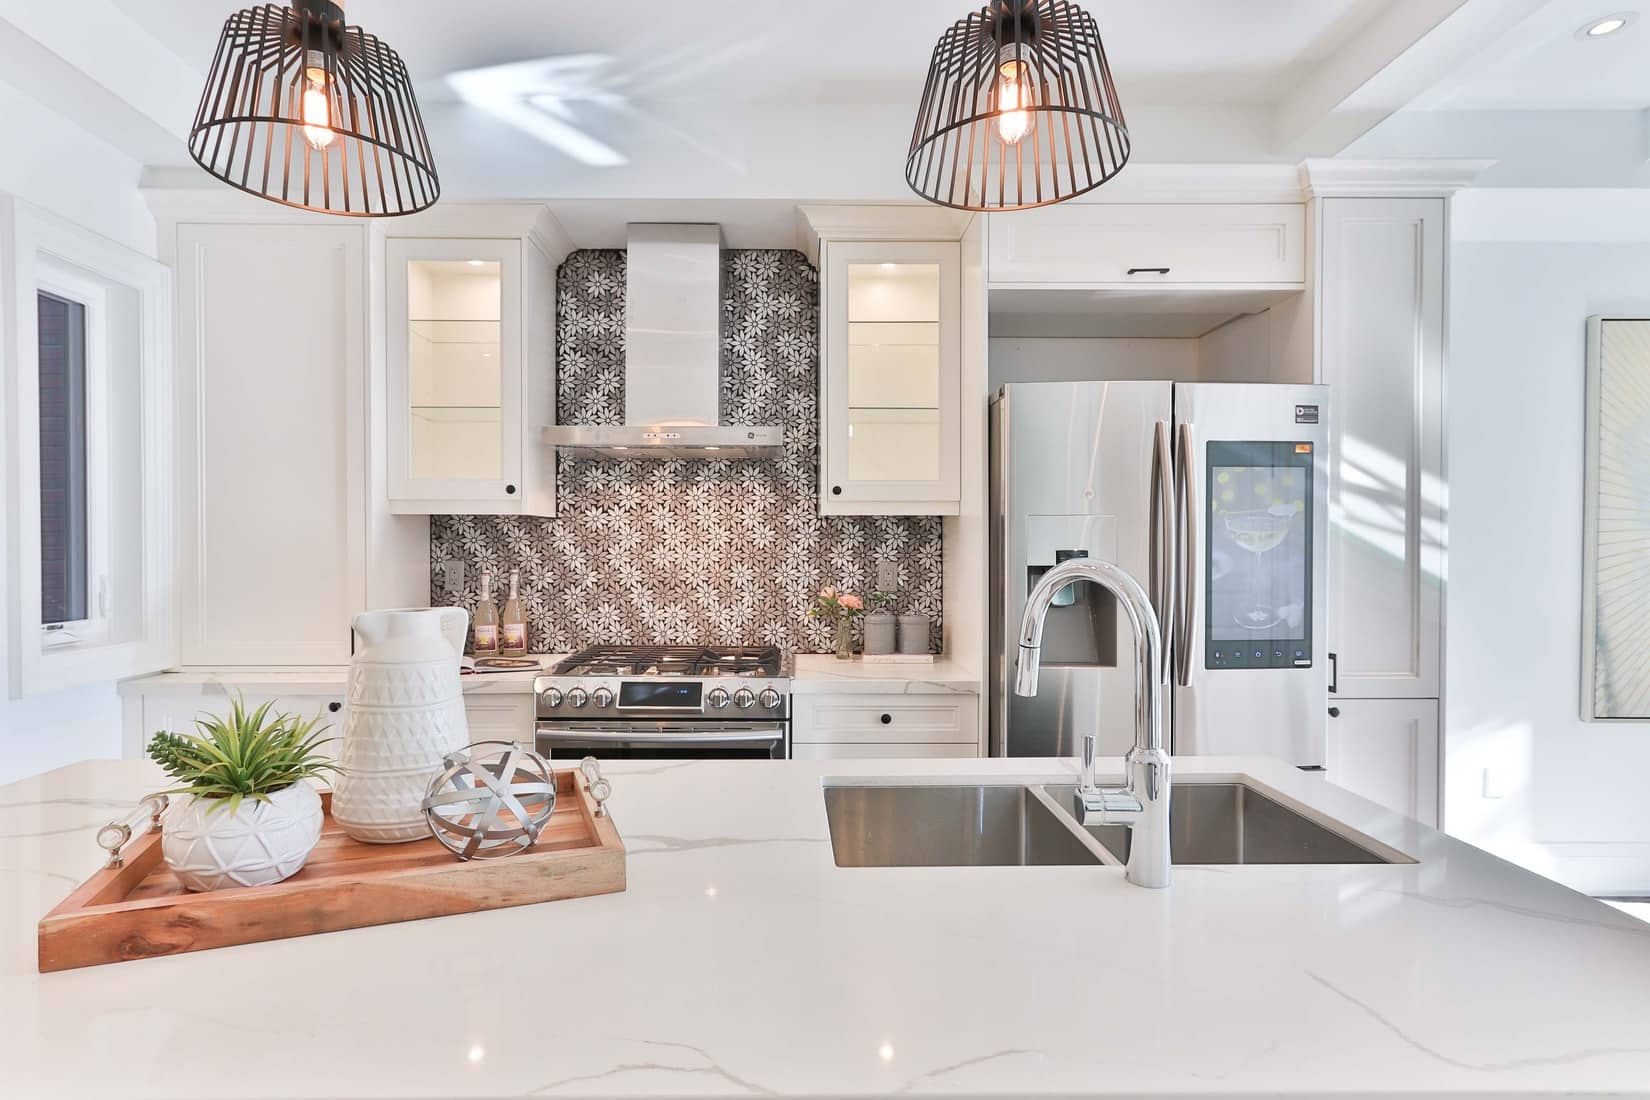 8 things you don't know about quartz counter tops 1